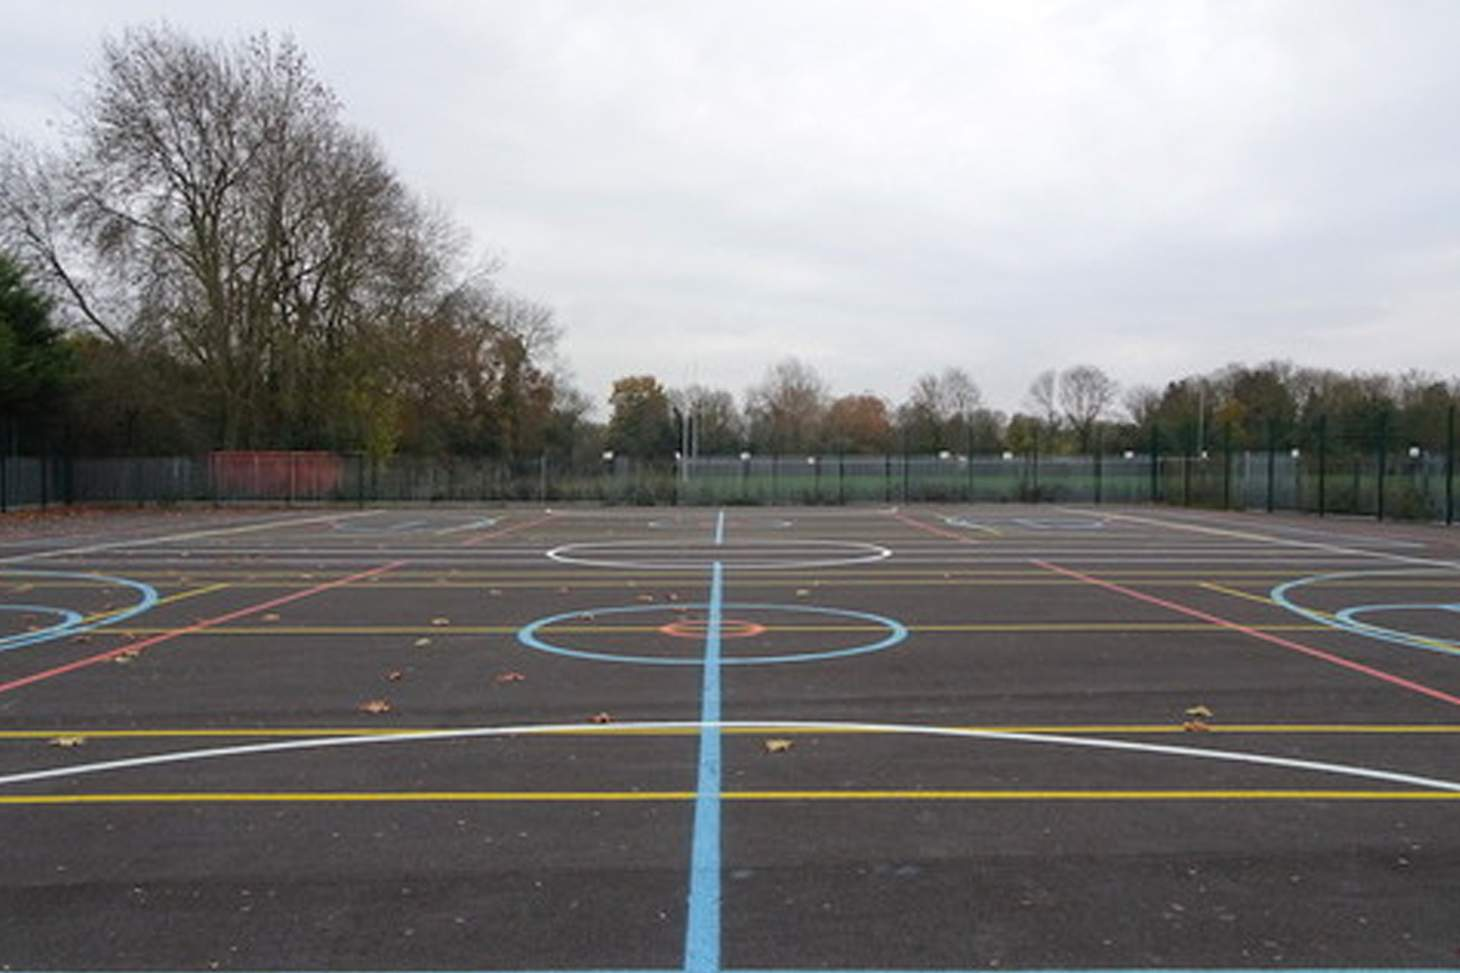 Orchardside School Outdoor | Hard (macadam) tennis court